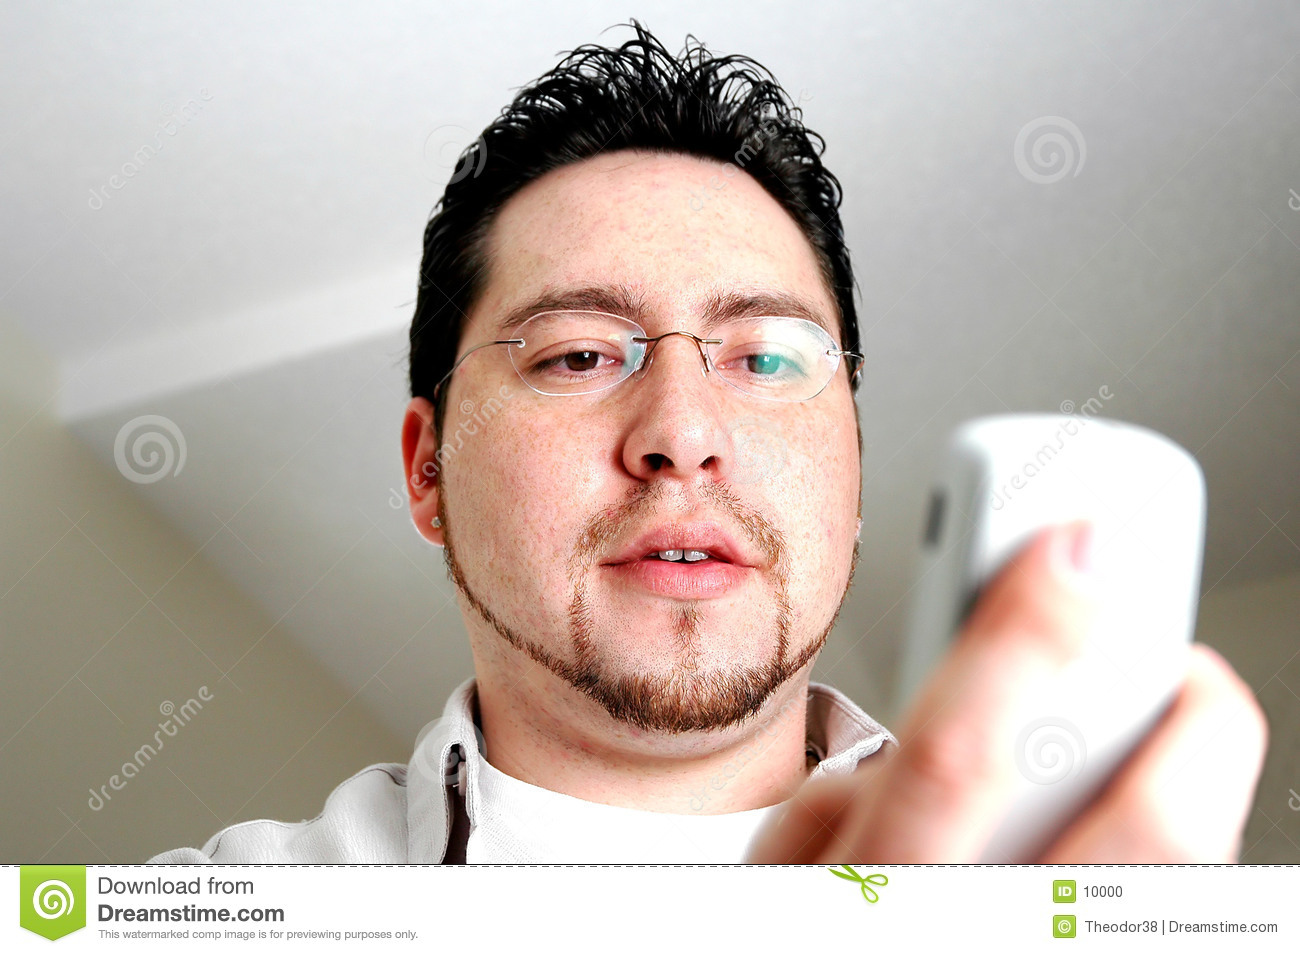 Man looking at phone